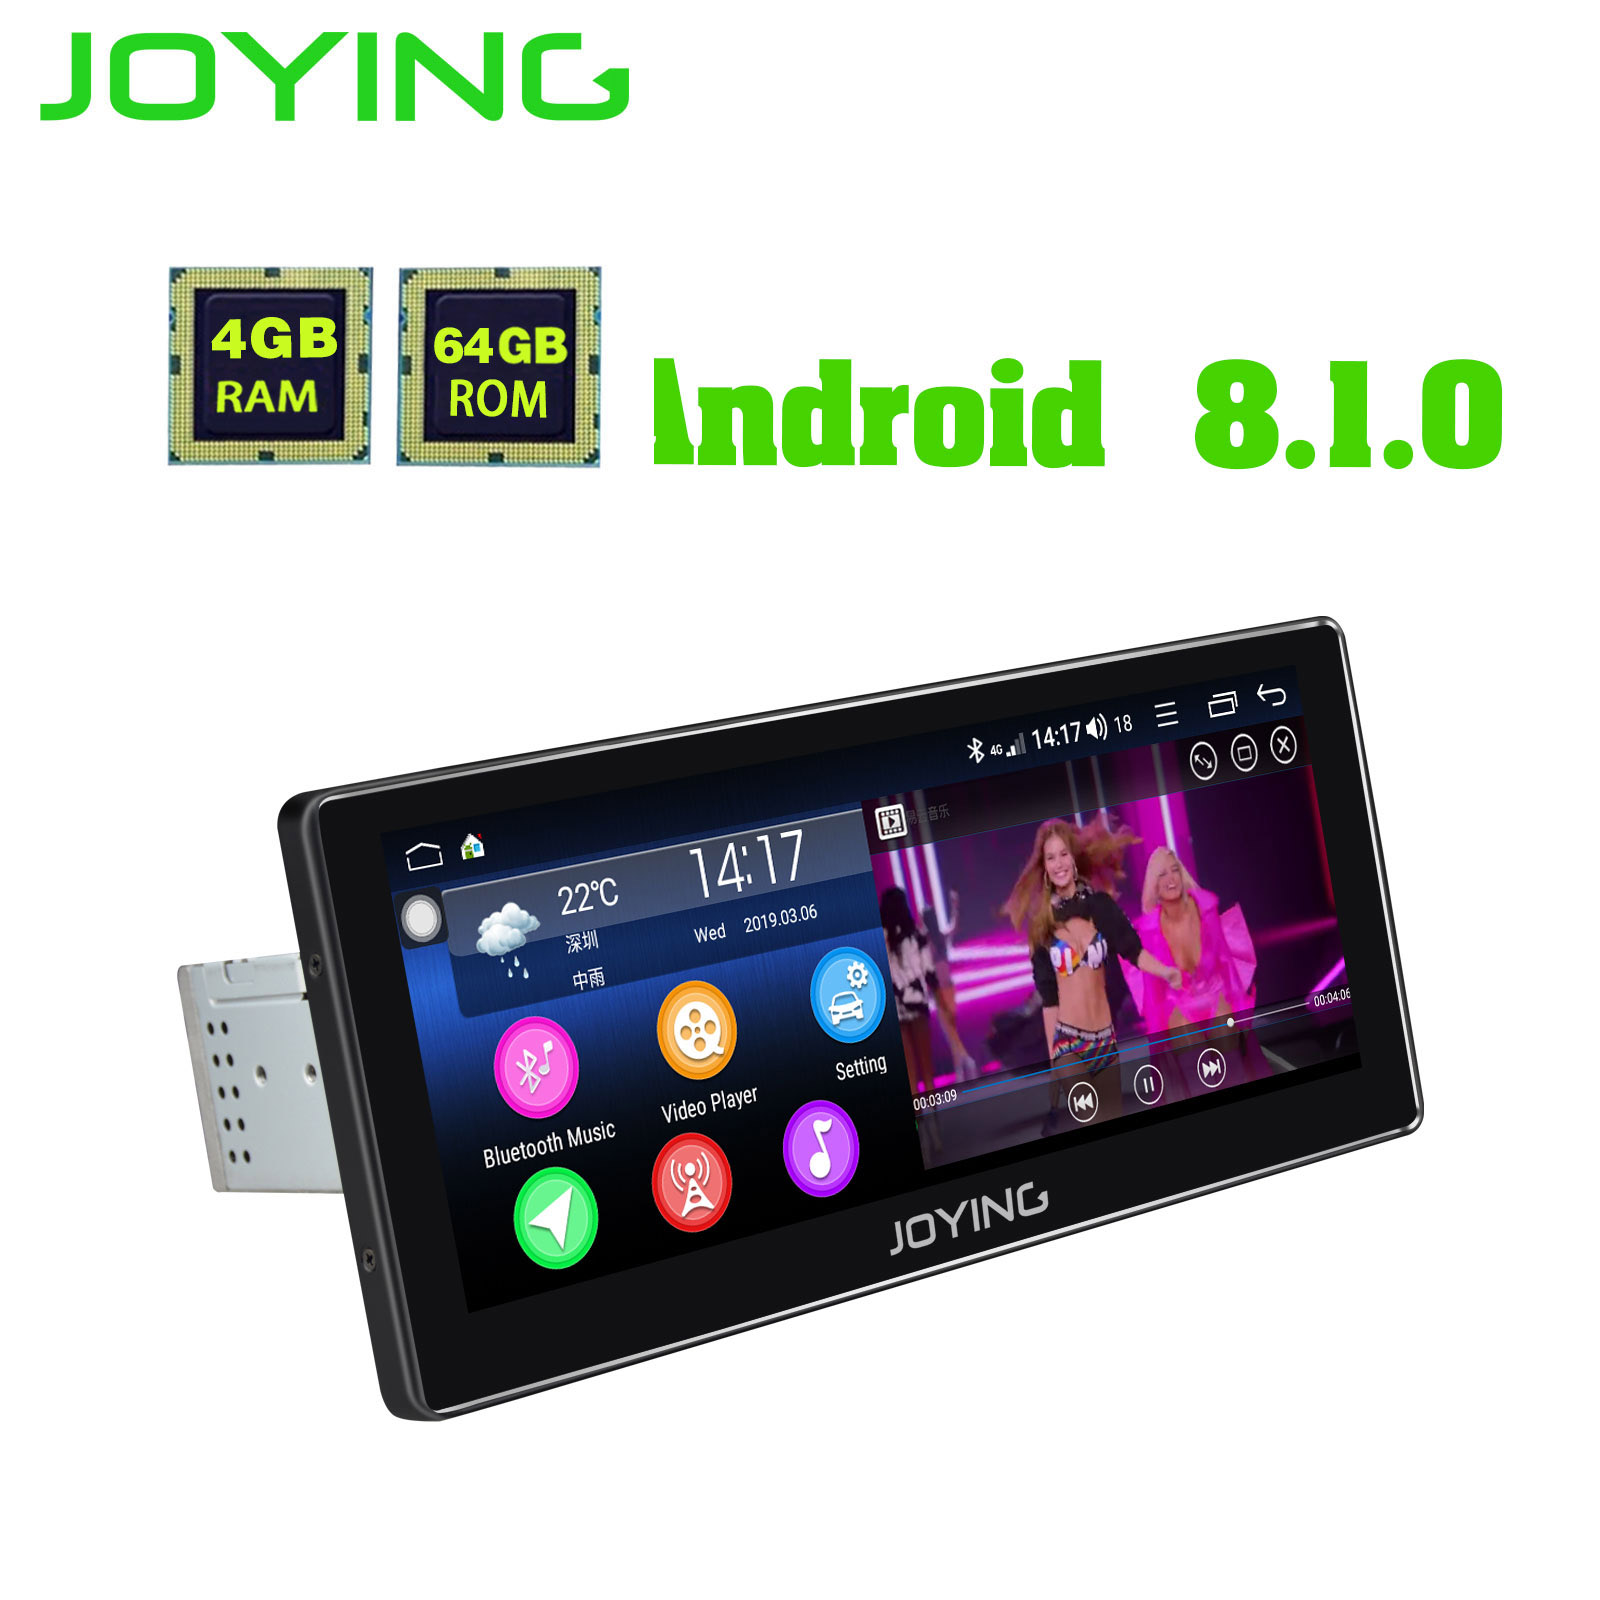 <font><b>Android</b></font> 8.<font><b>1</b></font> single <font><b>din</b></font> <font><b>car</b></font> <font><b>radio</b></font> player GPS receiver 10.25 inch HD Screen <font><b>4GB</b></font> <font><b>RAM</b></font> 64GB ROM stereo autoradio Support 4G Octa Core image